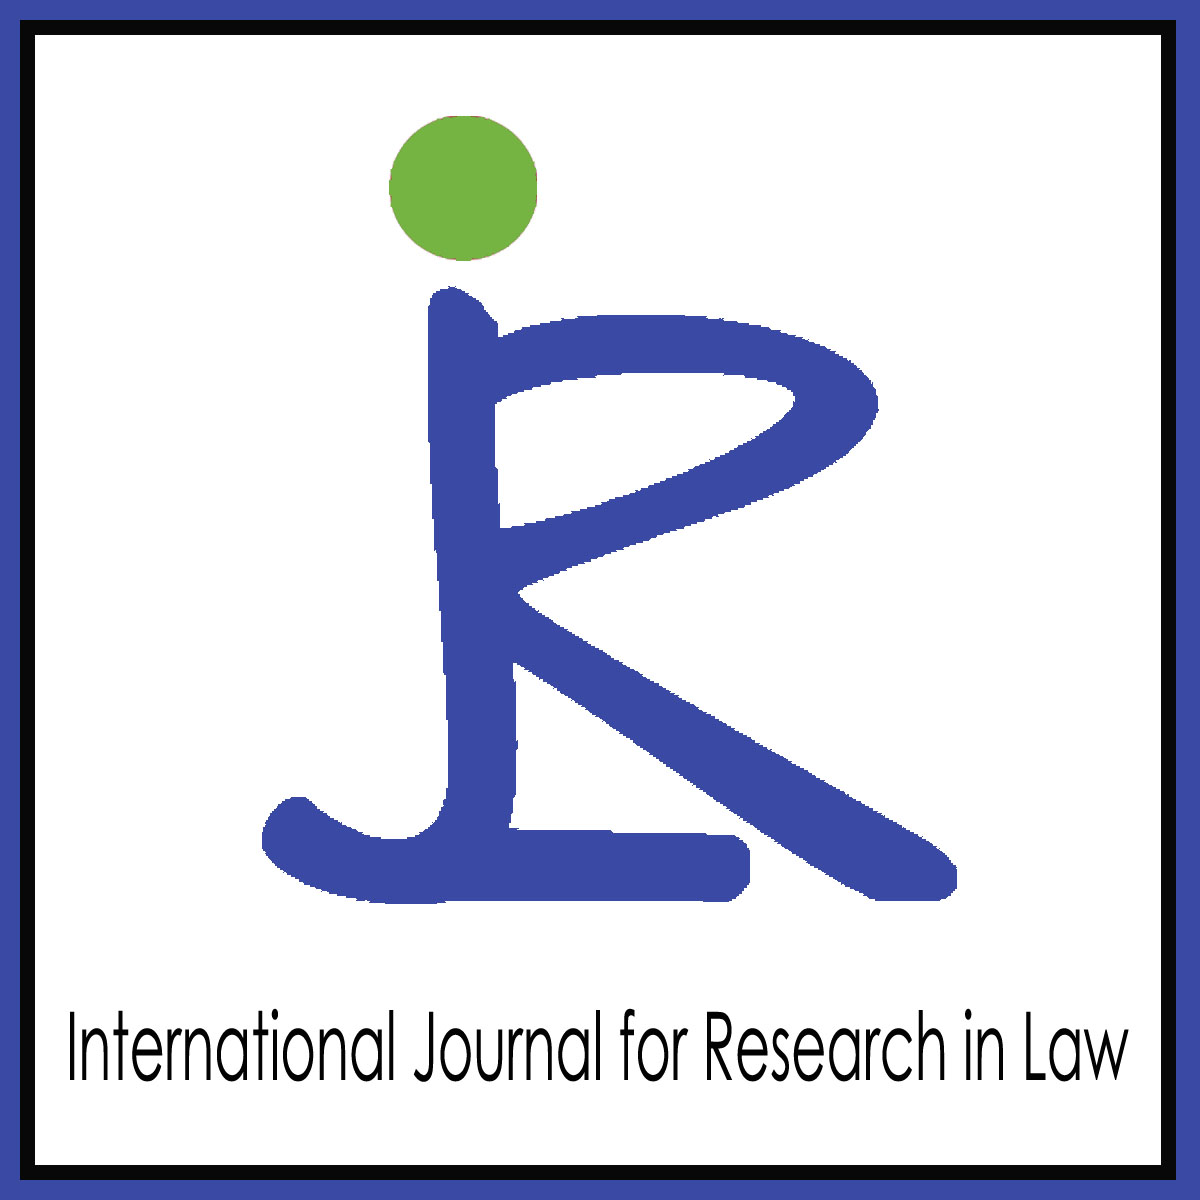 Call for Papers: International Journal for Research in Law